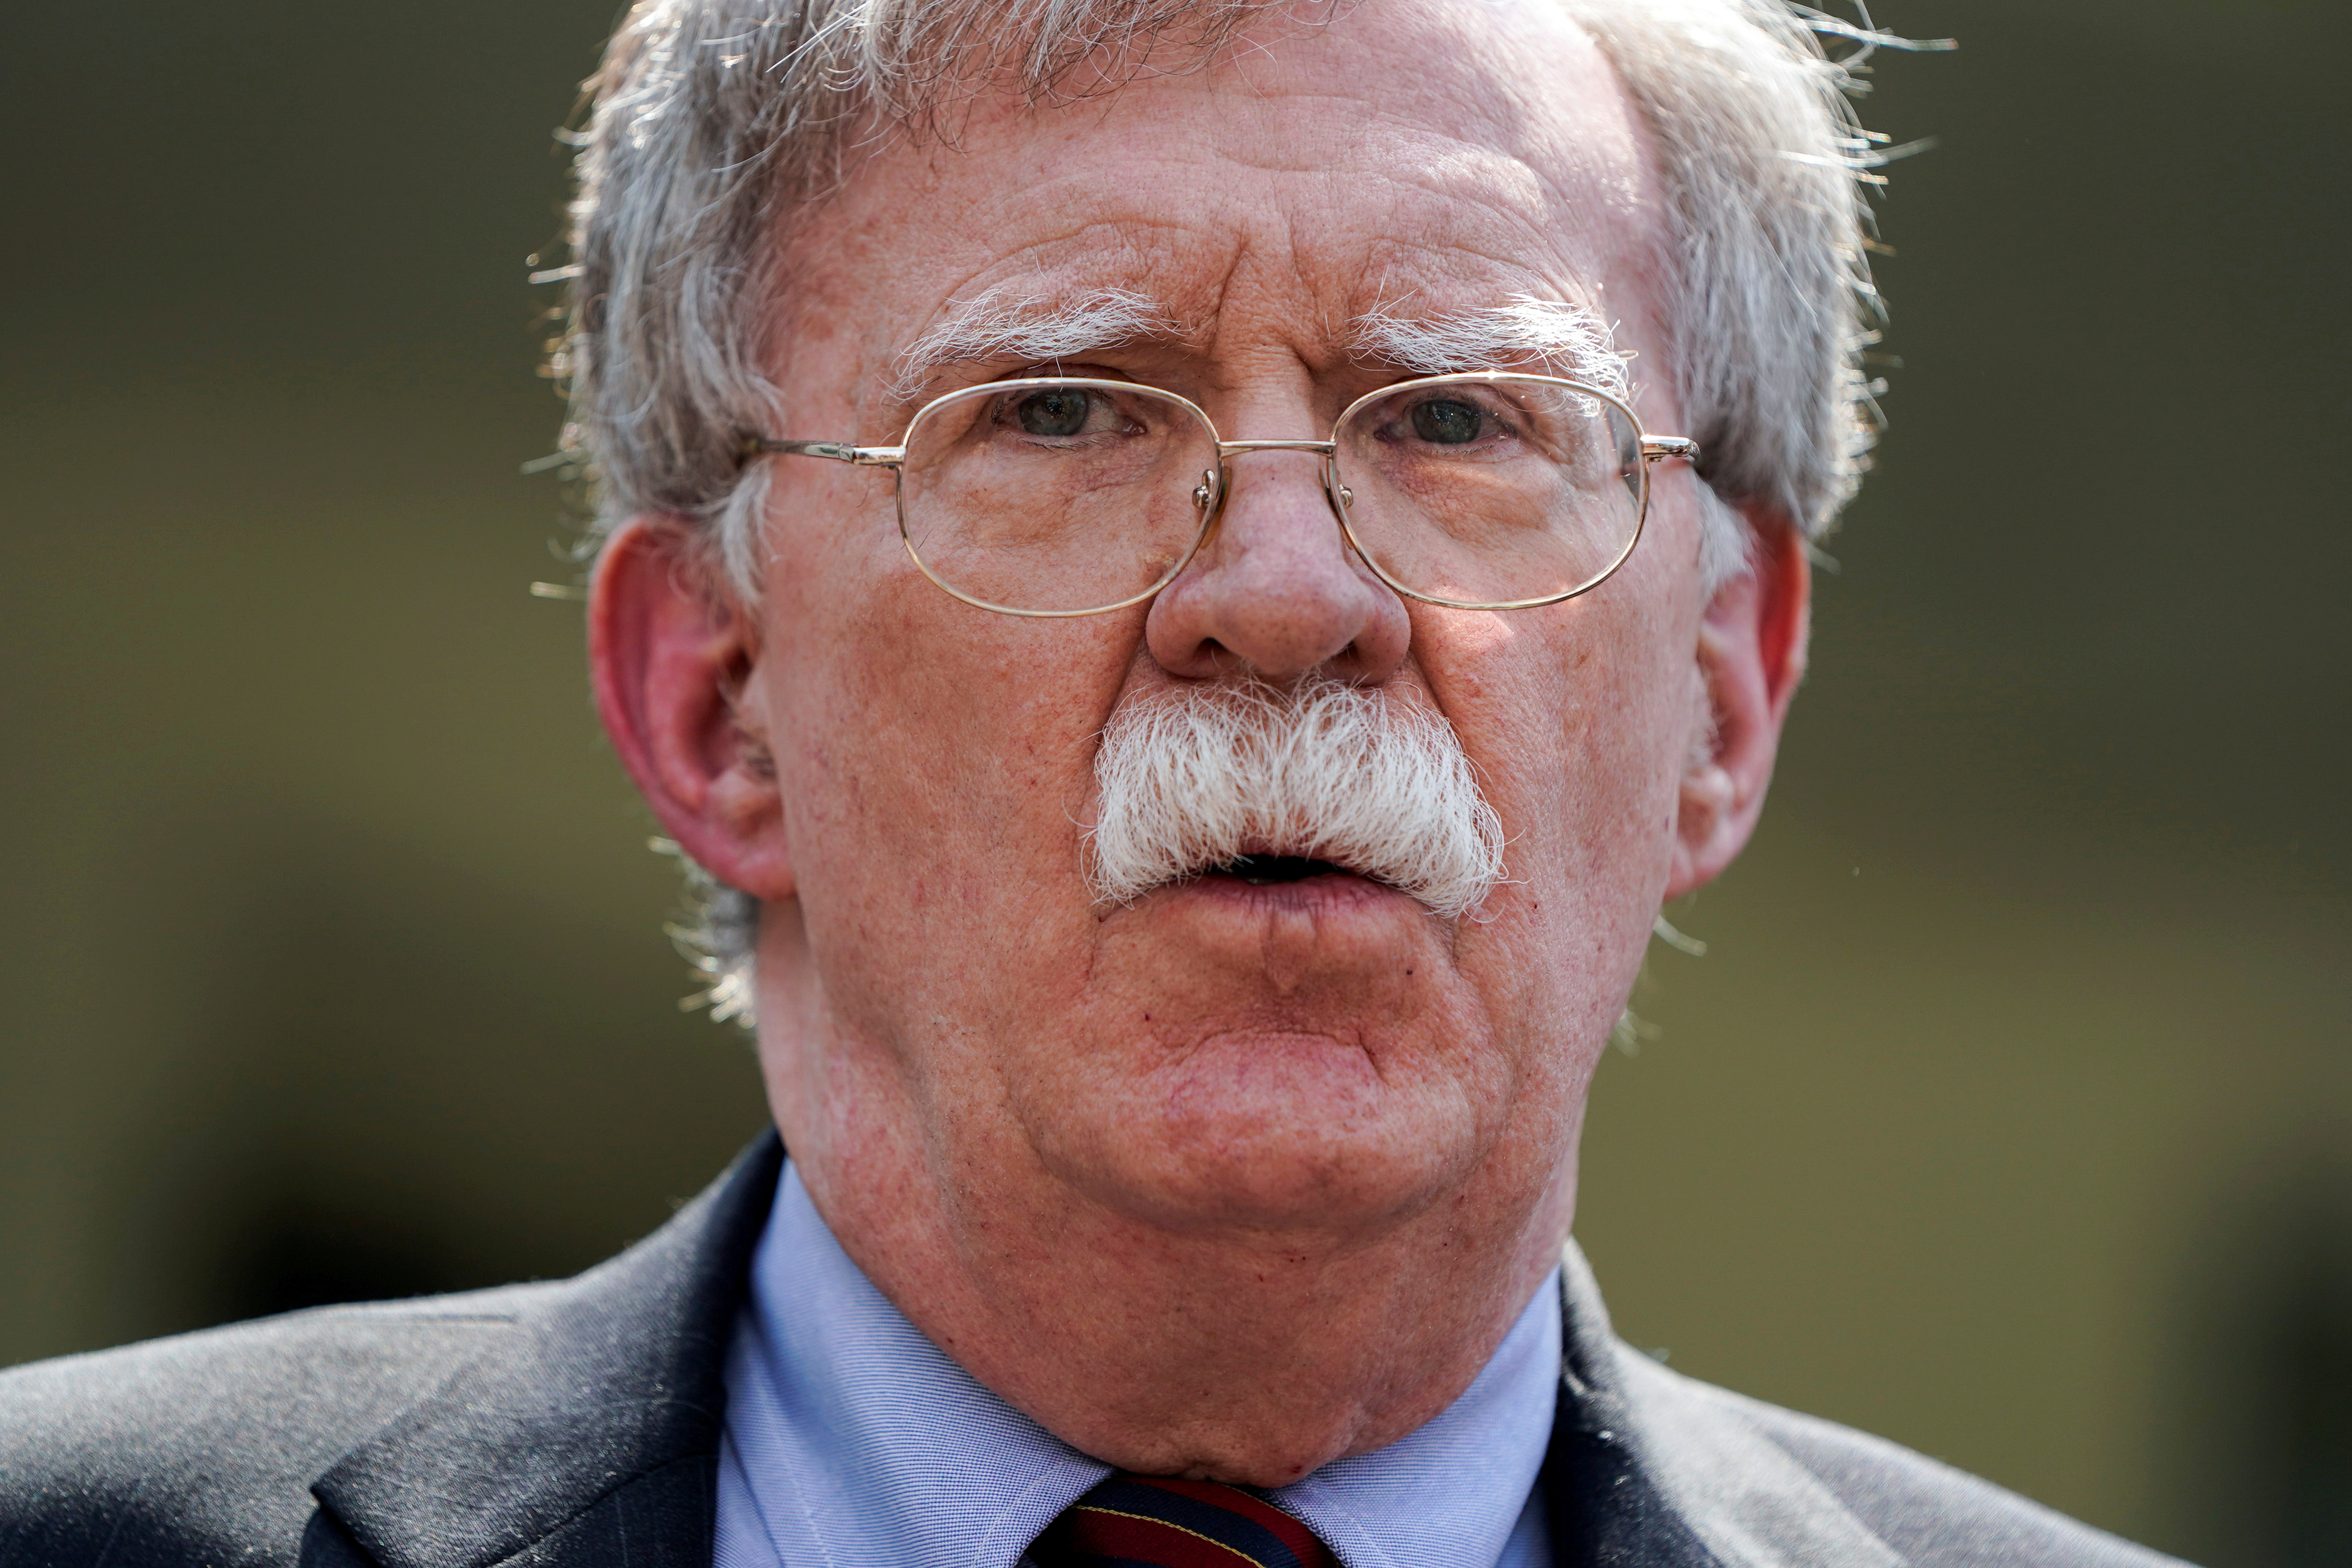 FILE PHOTO: White House national security adviser John Bolton speaks about the political unrest in Venezuela after violence broke out at anti-government protests near Caracas, outside the White House in Washington, U.S., April 30, 2019. REUTERS/Joshua Roberts